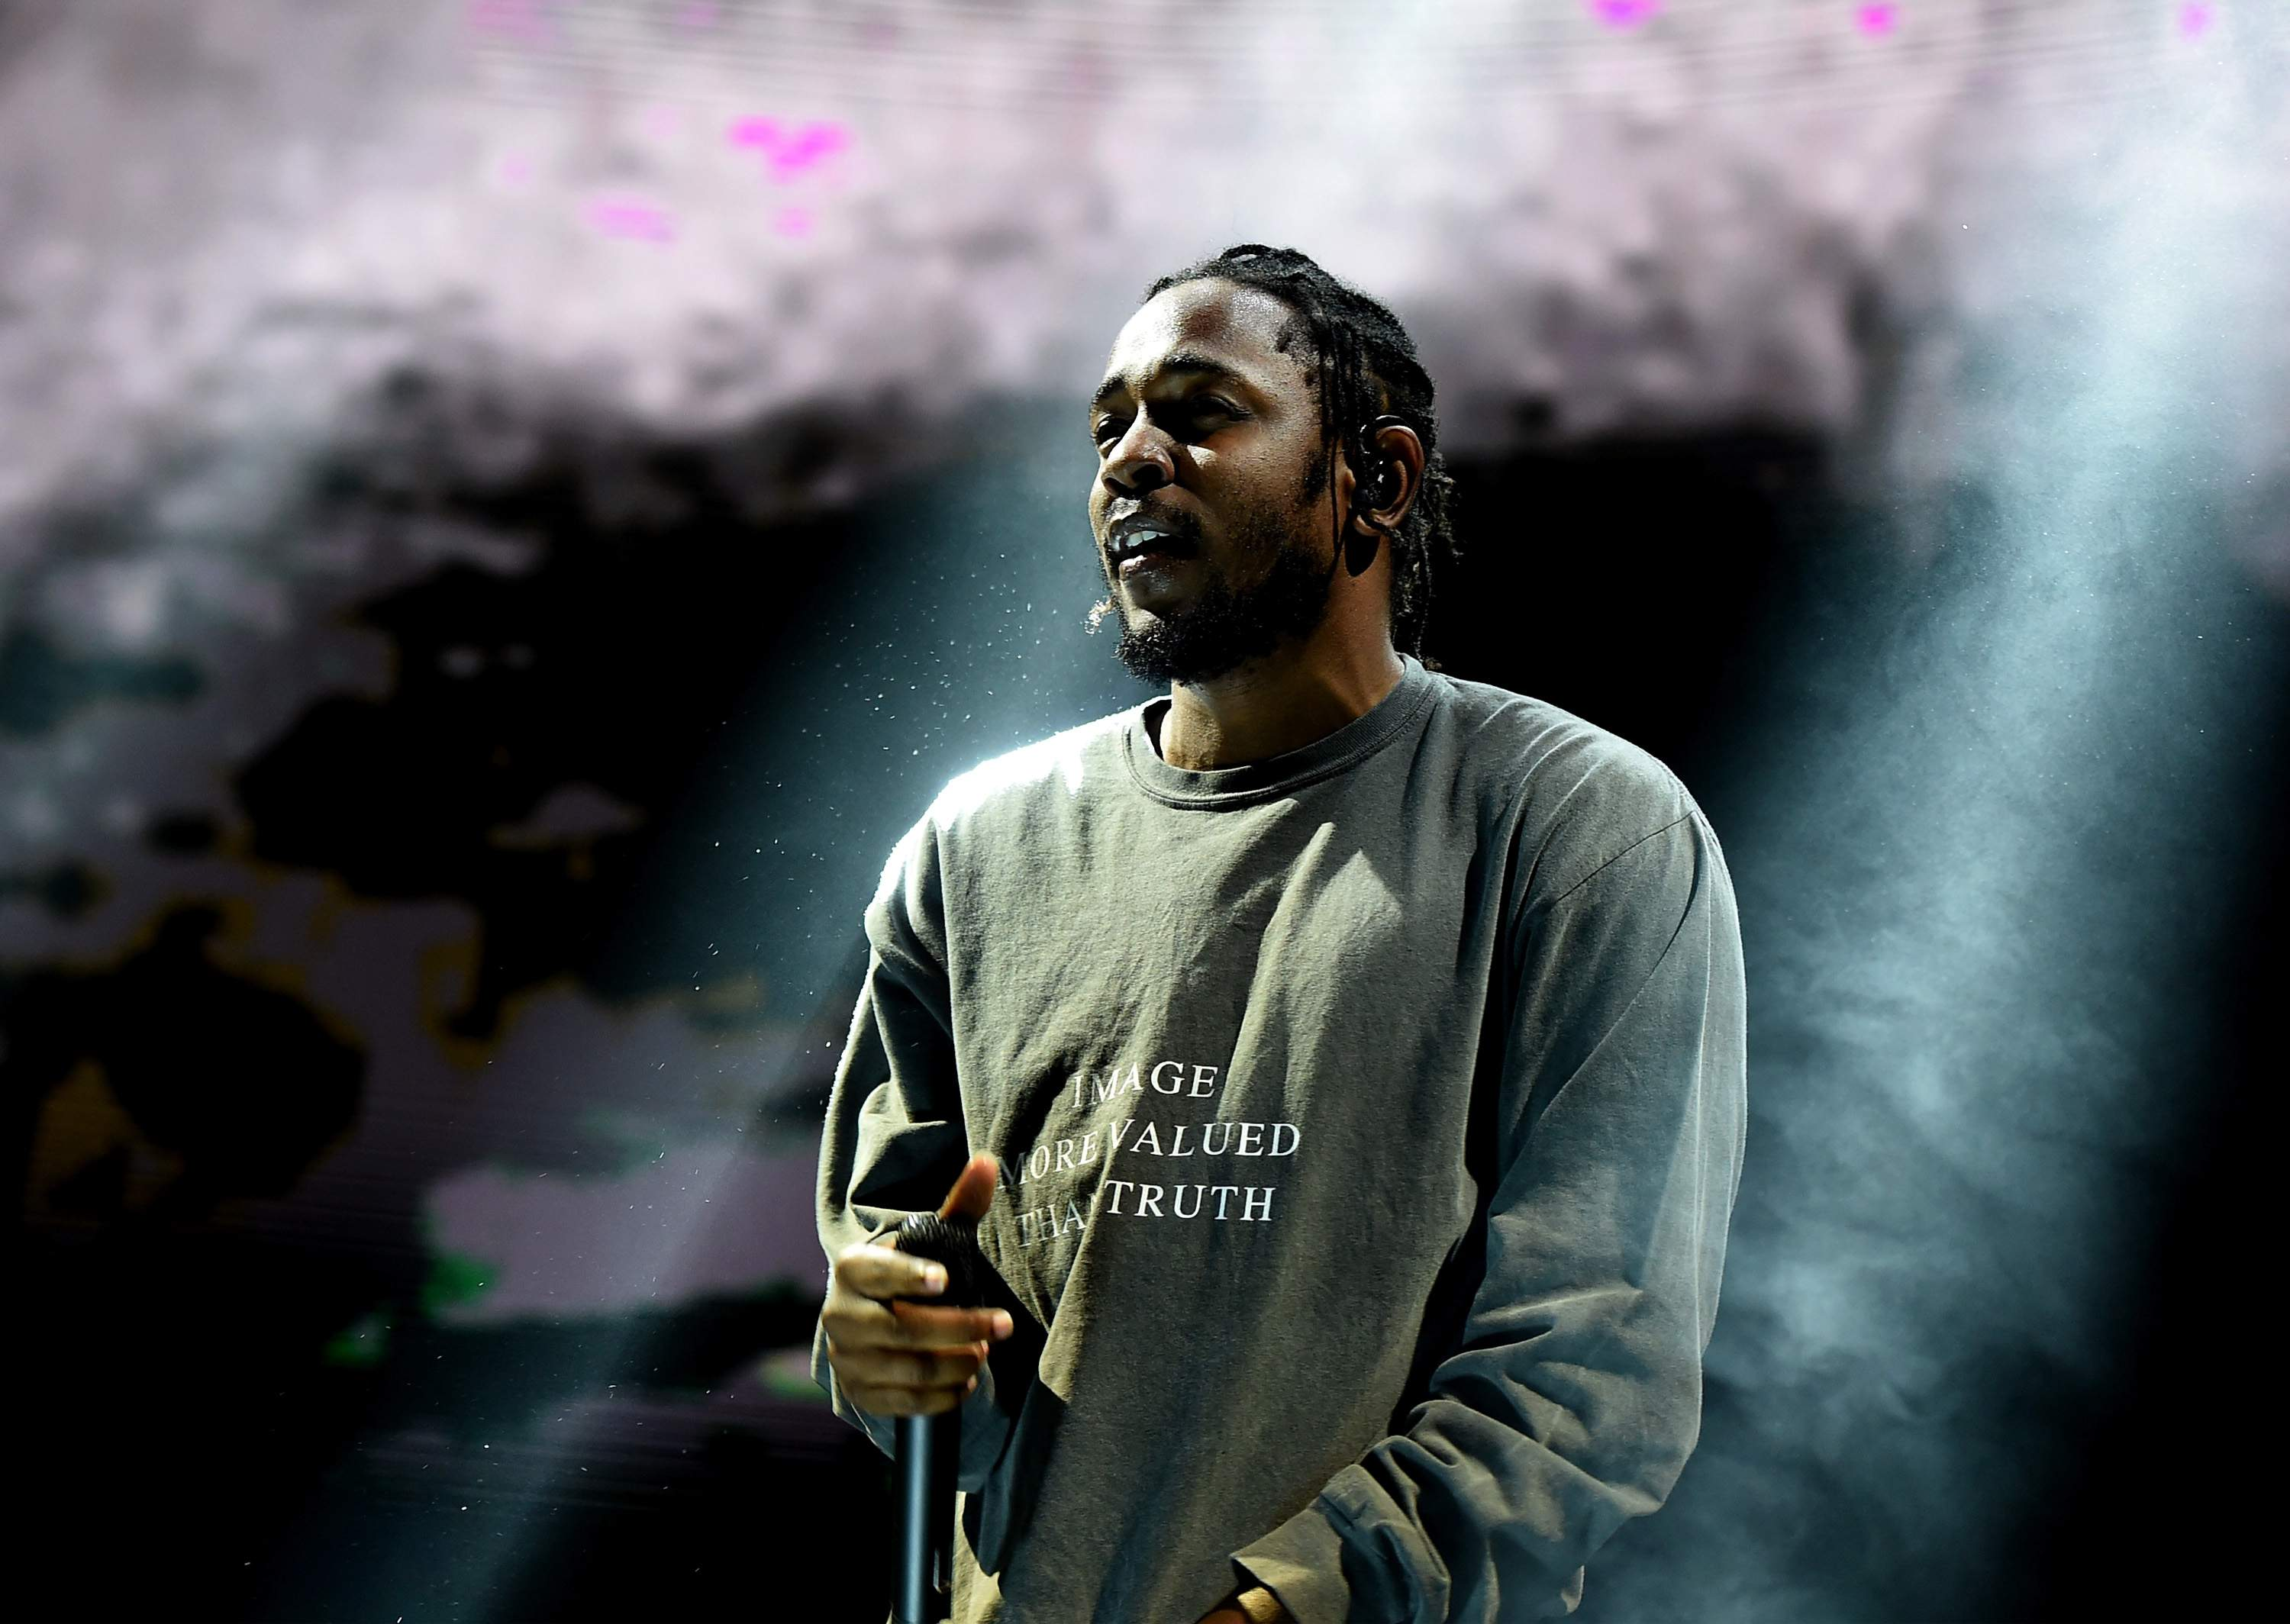 Kendrick Lamar's 'DAMN.' Album Hits No. 1 Again gettyimages 596741732